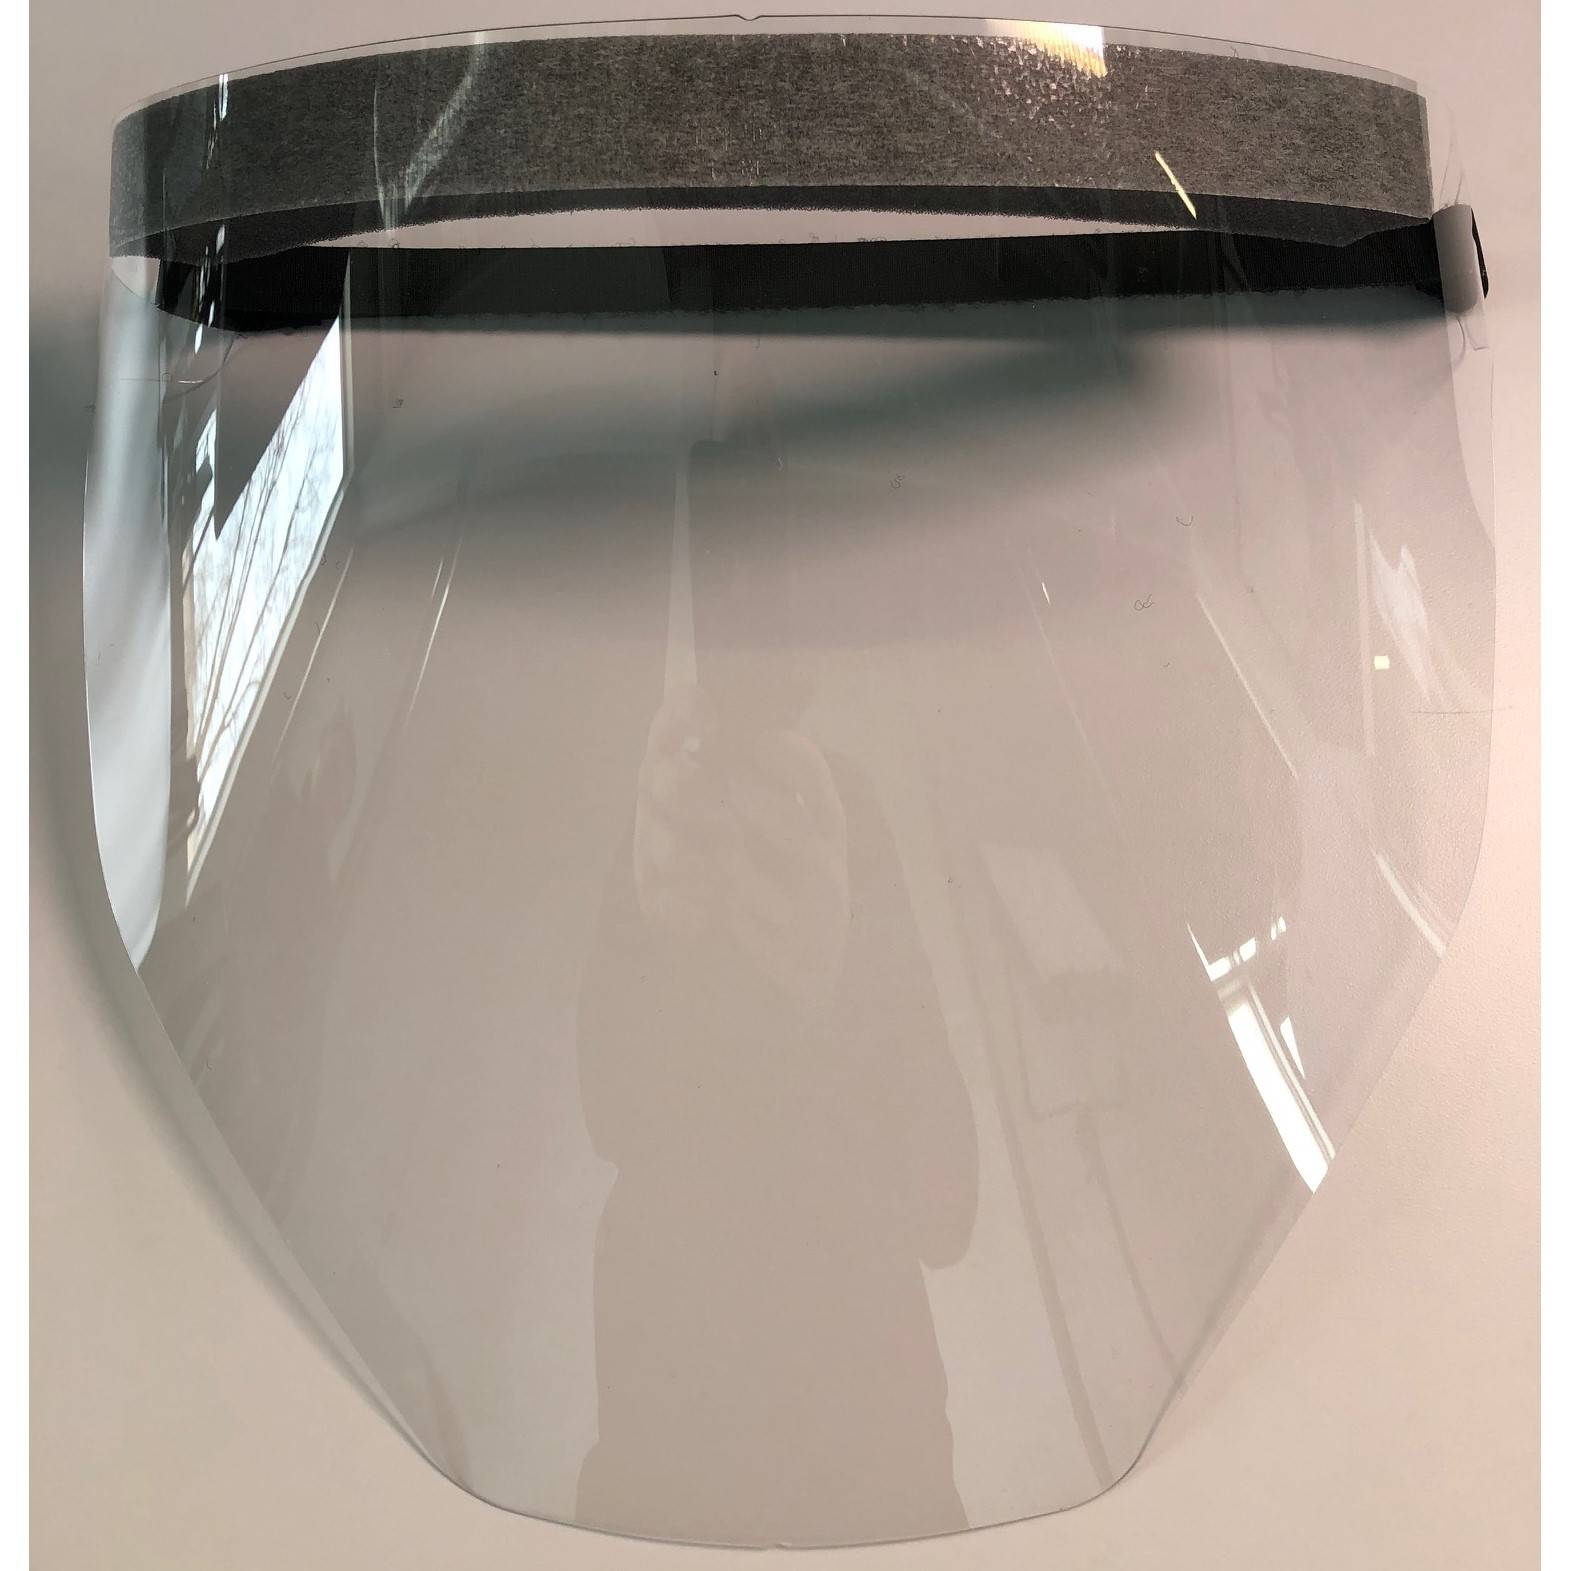 Faceshield/Face Mask - PET Plastic with Adjustable Hook & Loop Closure (PK 100 Faceshields) - RPB Safety SN-Z